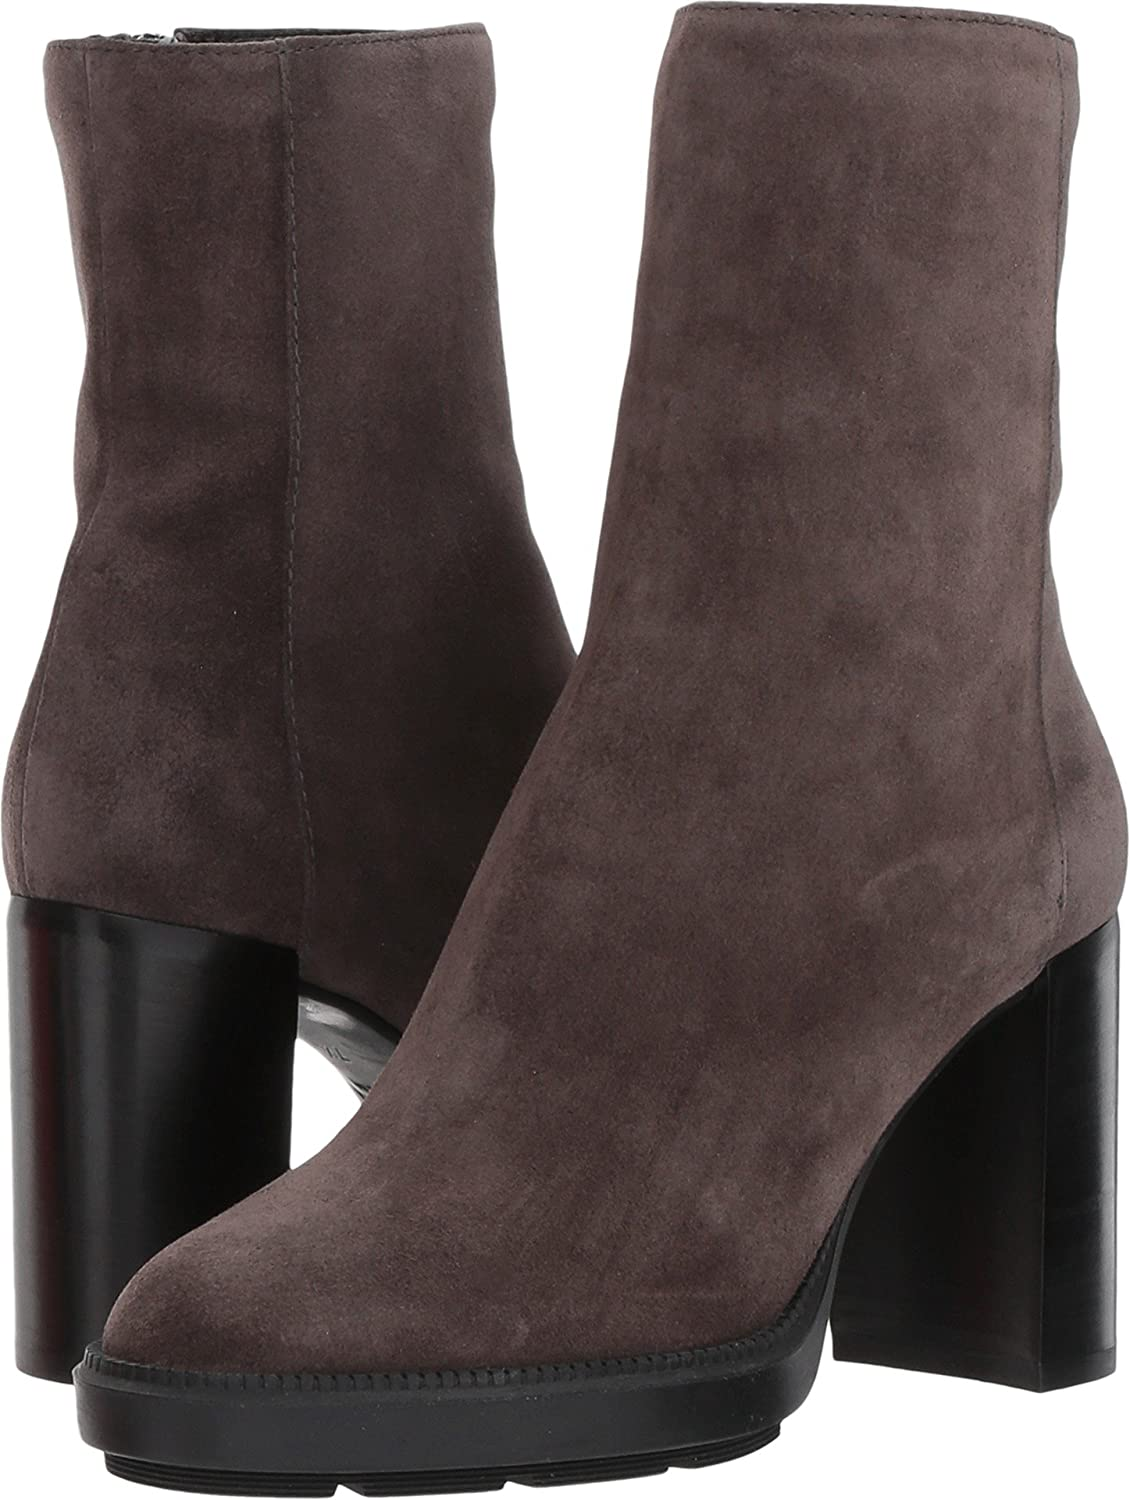 Aquatalia Women's Isla Calf Ankle Boot B075NRCBHL 7 B(M) US|Dark Grey Suede